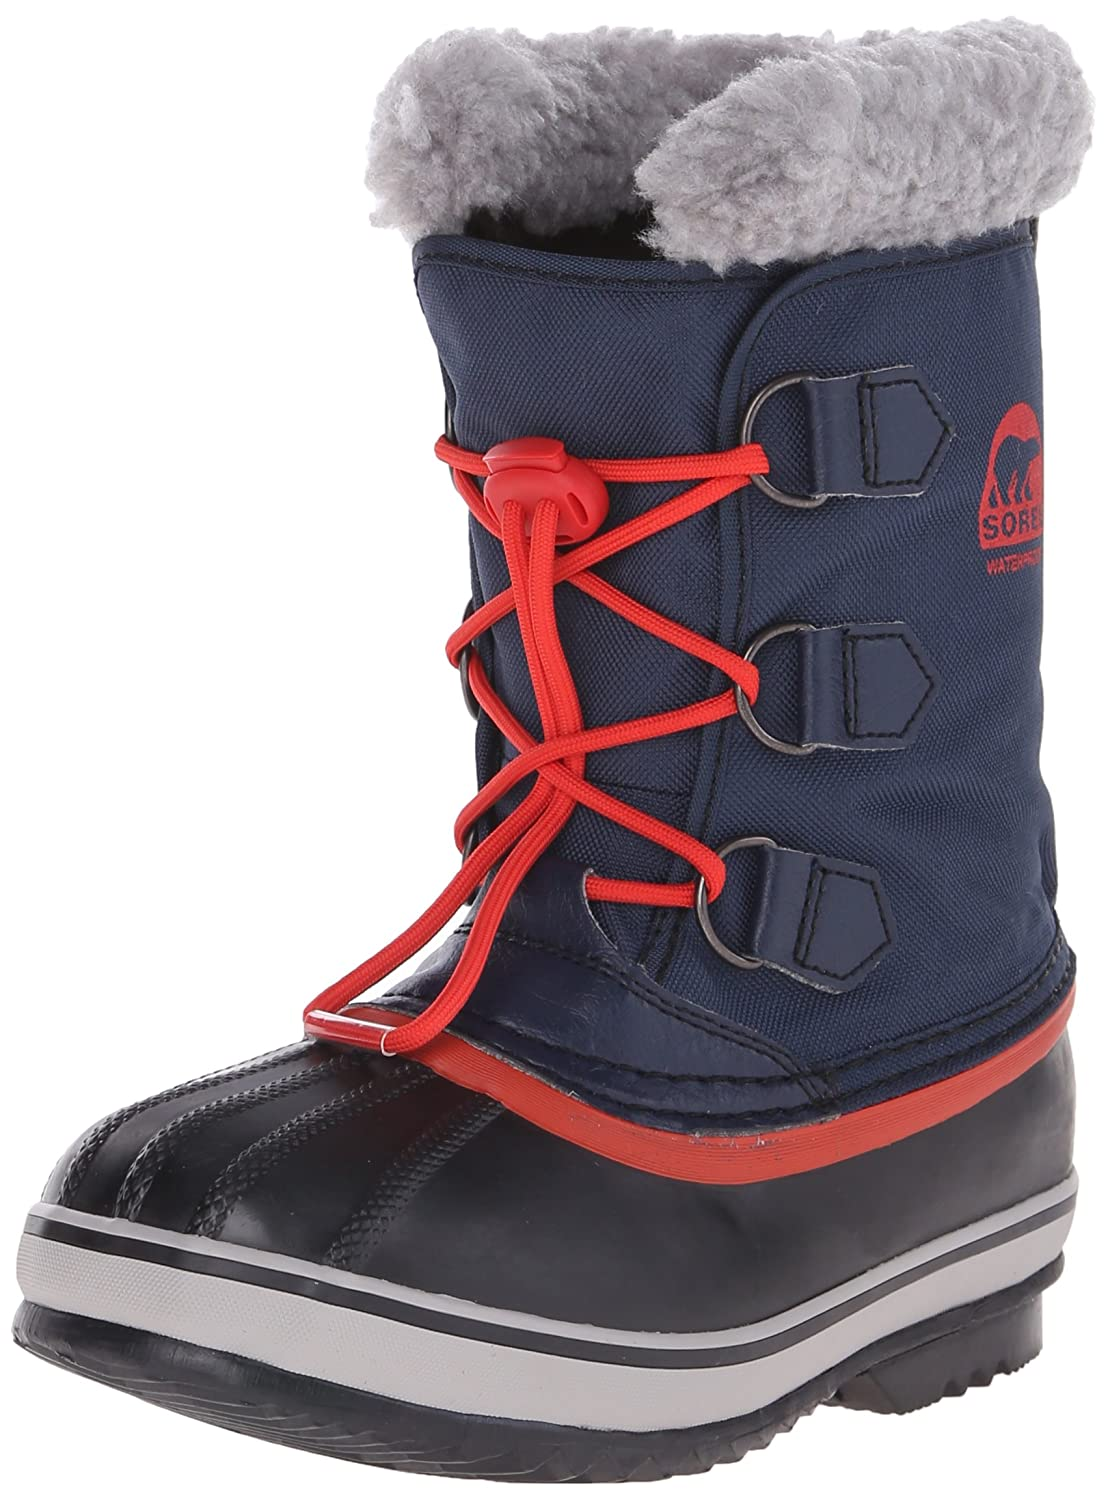 Sorel Yoot Pac Nylon Cold Weather Boot (Toddler/Little Kid/Big Kid) YOOT PAC NYLON-Black - K